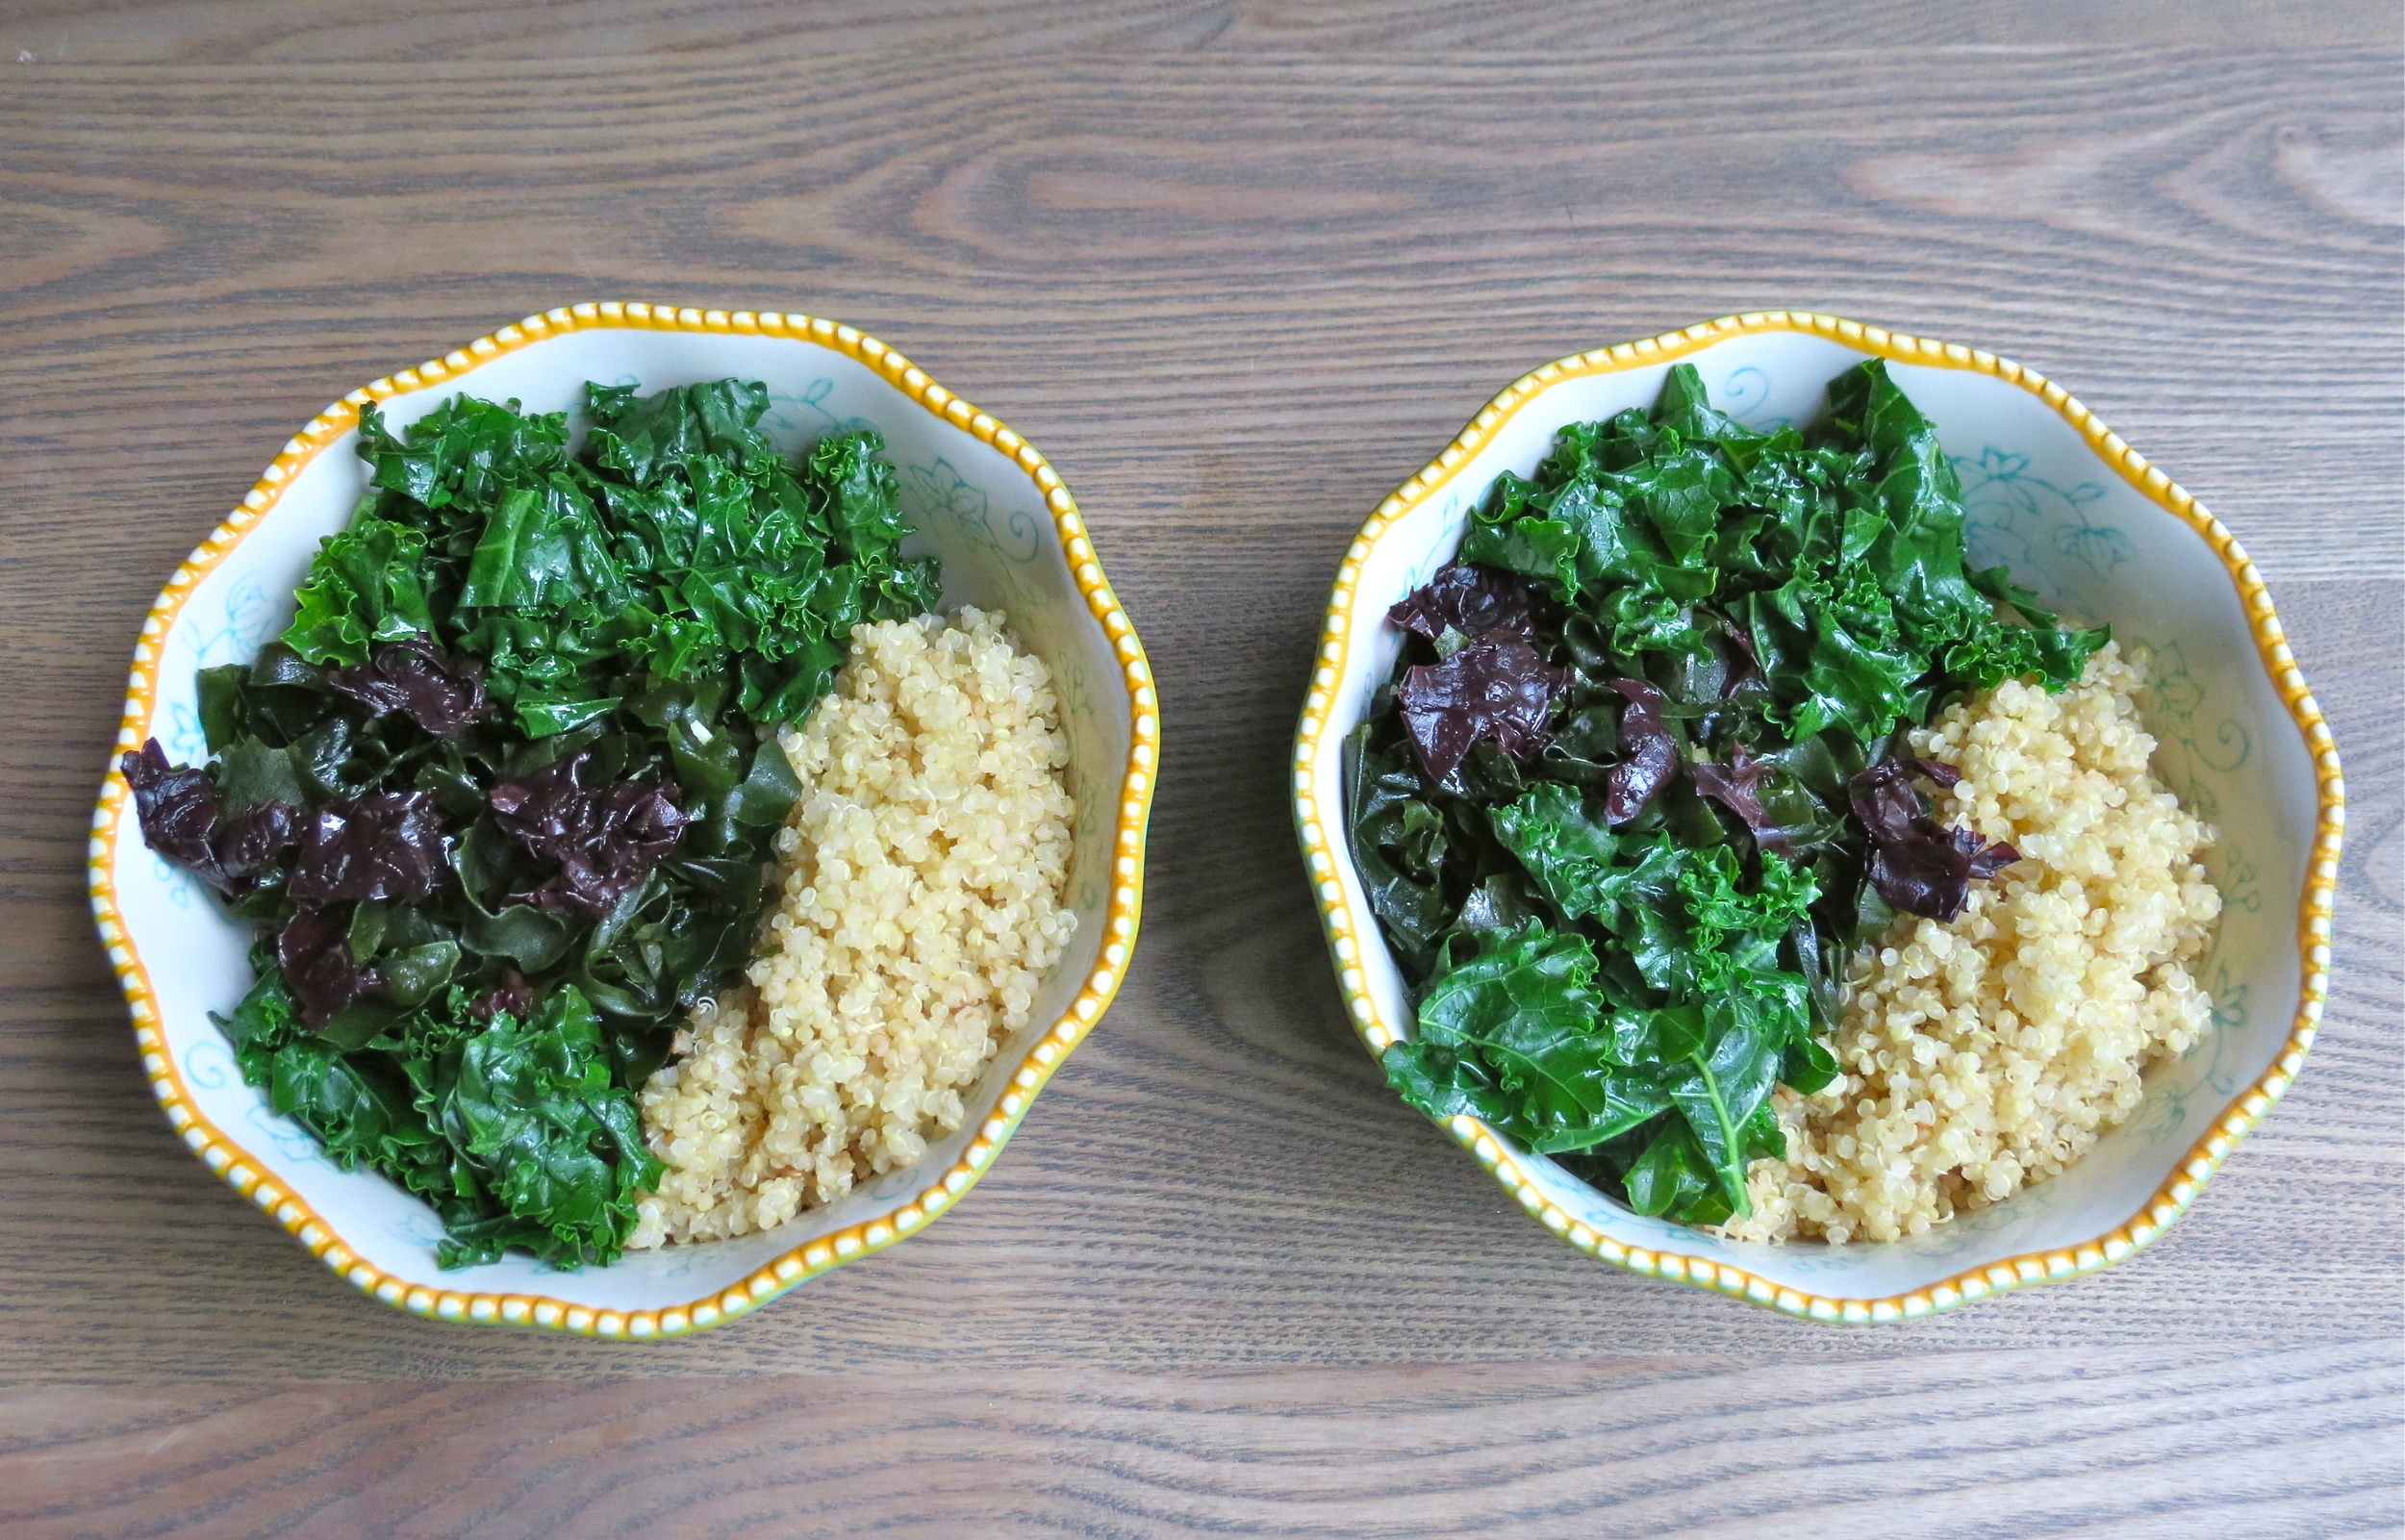 Starting to build the bowls- quinoa, kale, and seaweed.